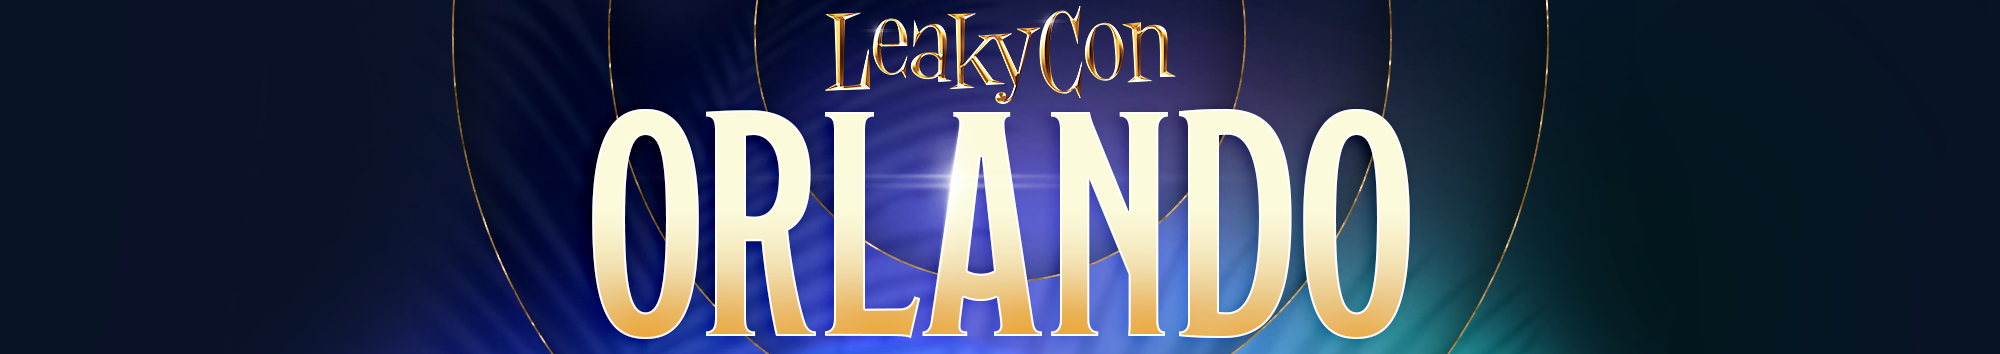 Tickets for LeakyCon 2020: Orlando in Orlando from ShowClix